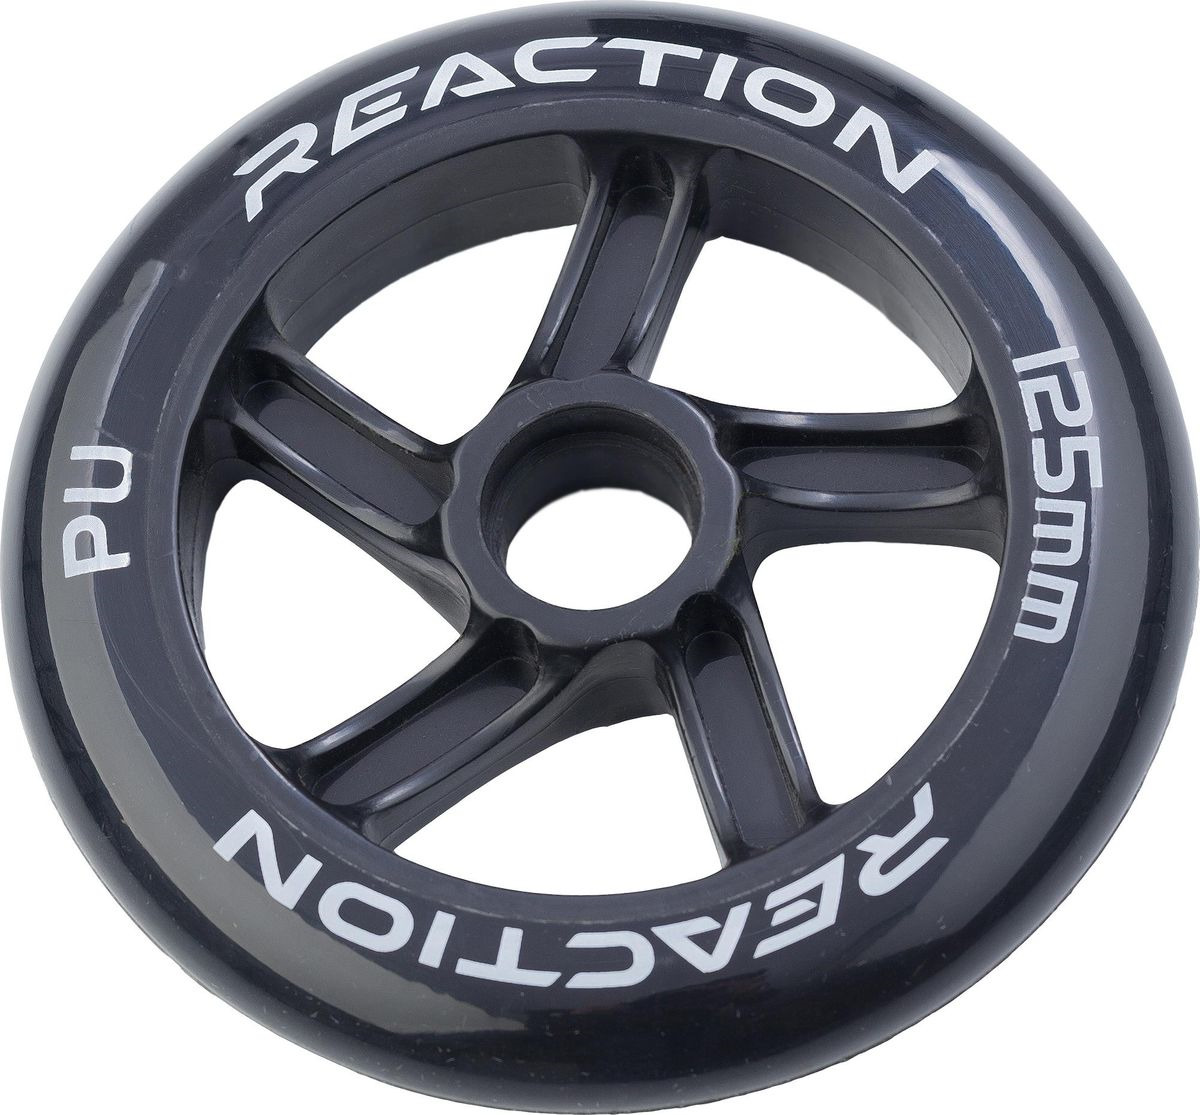 Колесо для самоката Reaction Wheel 125 Scooter Wheel, ERERO05103, черный колесо 6х2 для самоката